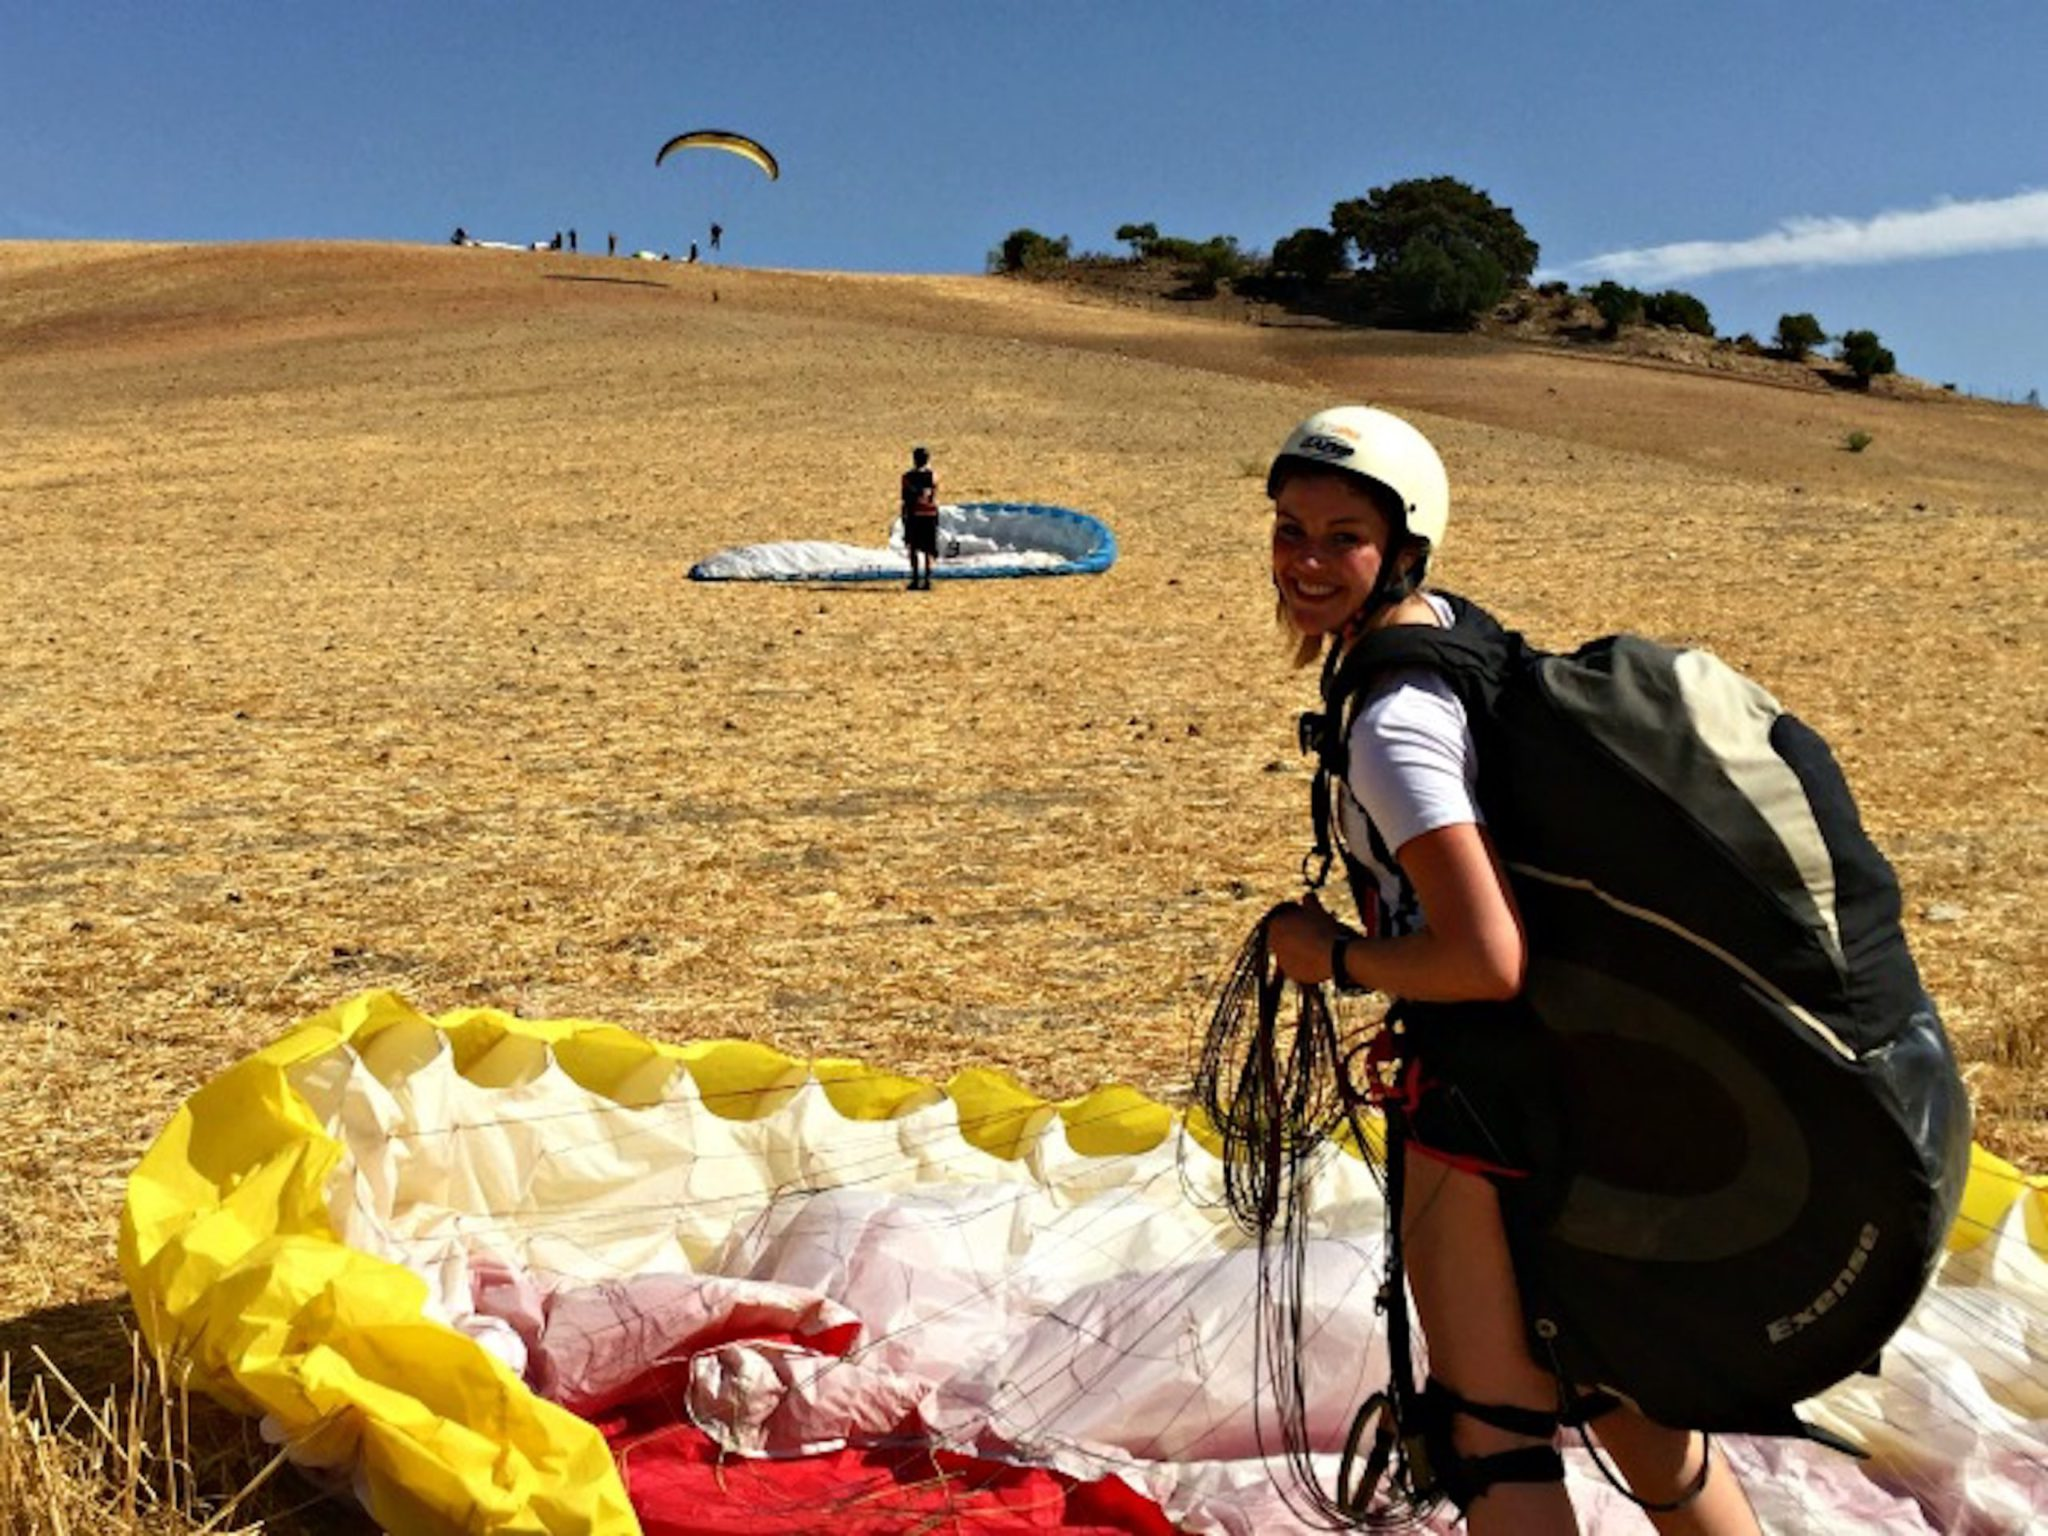 Beginners paragliding course in Spain: Learn to Paraglide